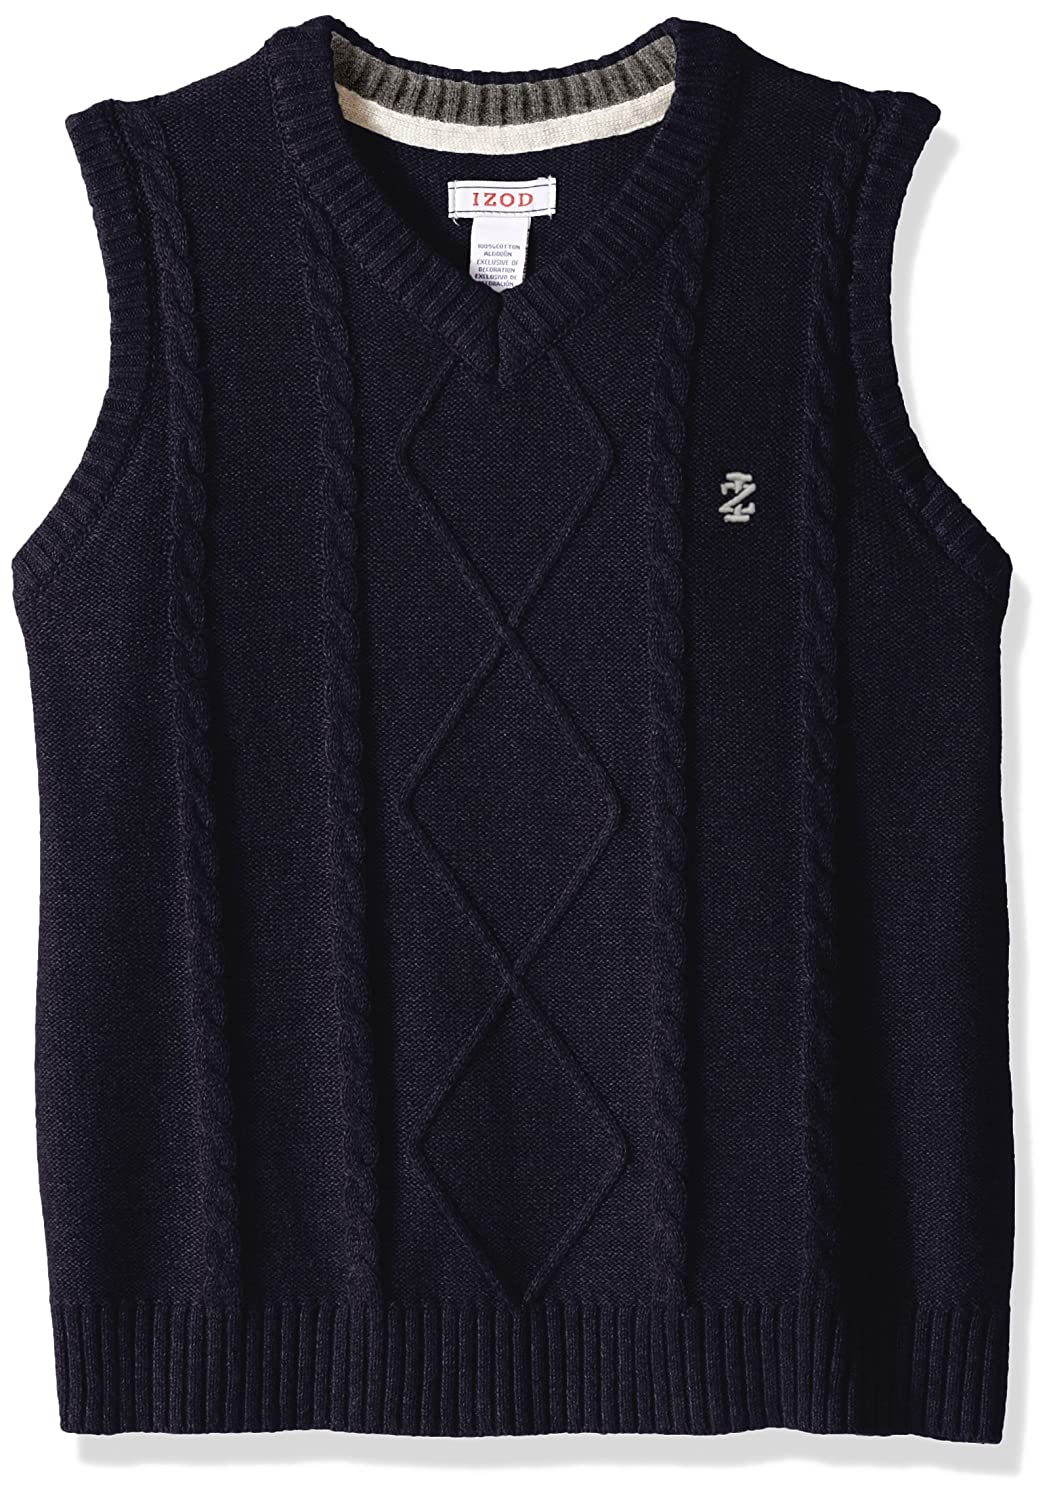 IZOD Boys' Big Sweater Vest Medium Grey Heather Small IZOD Children's Apparel Z813077